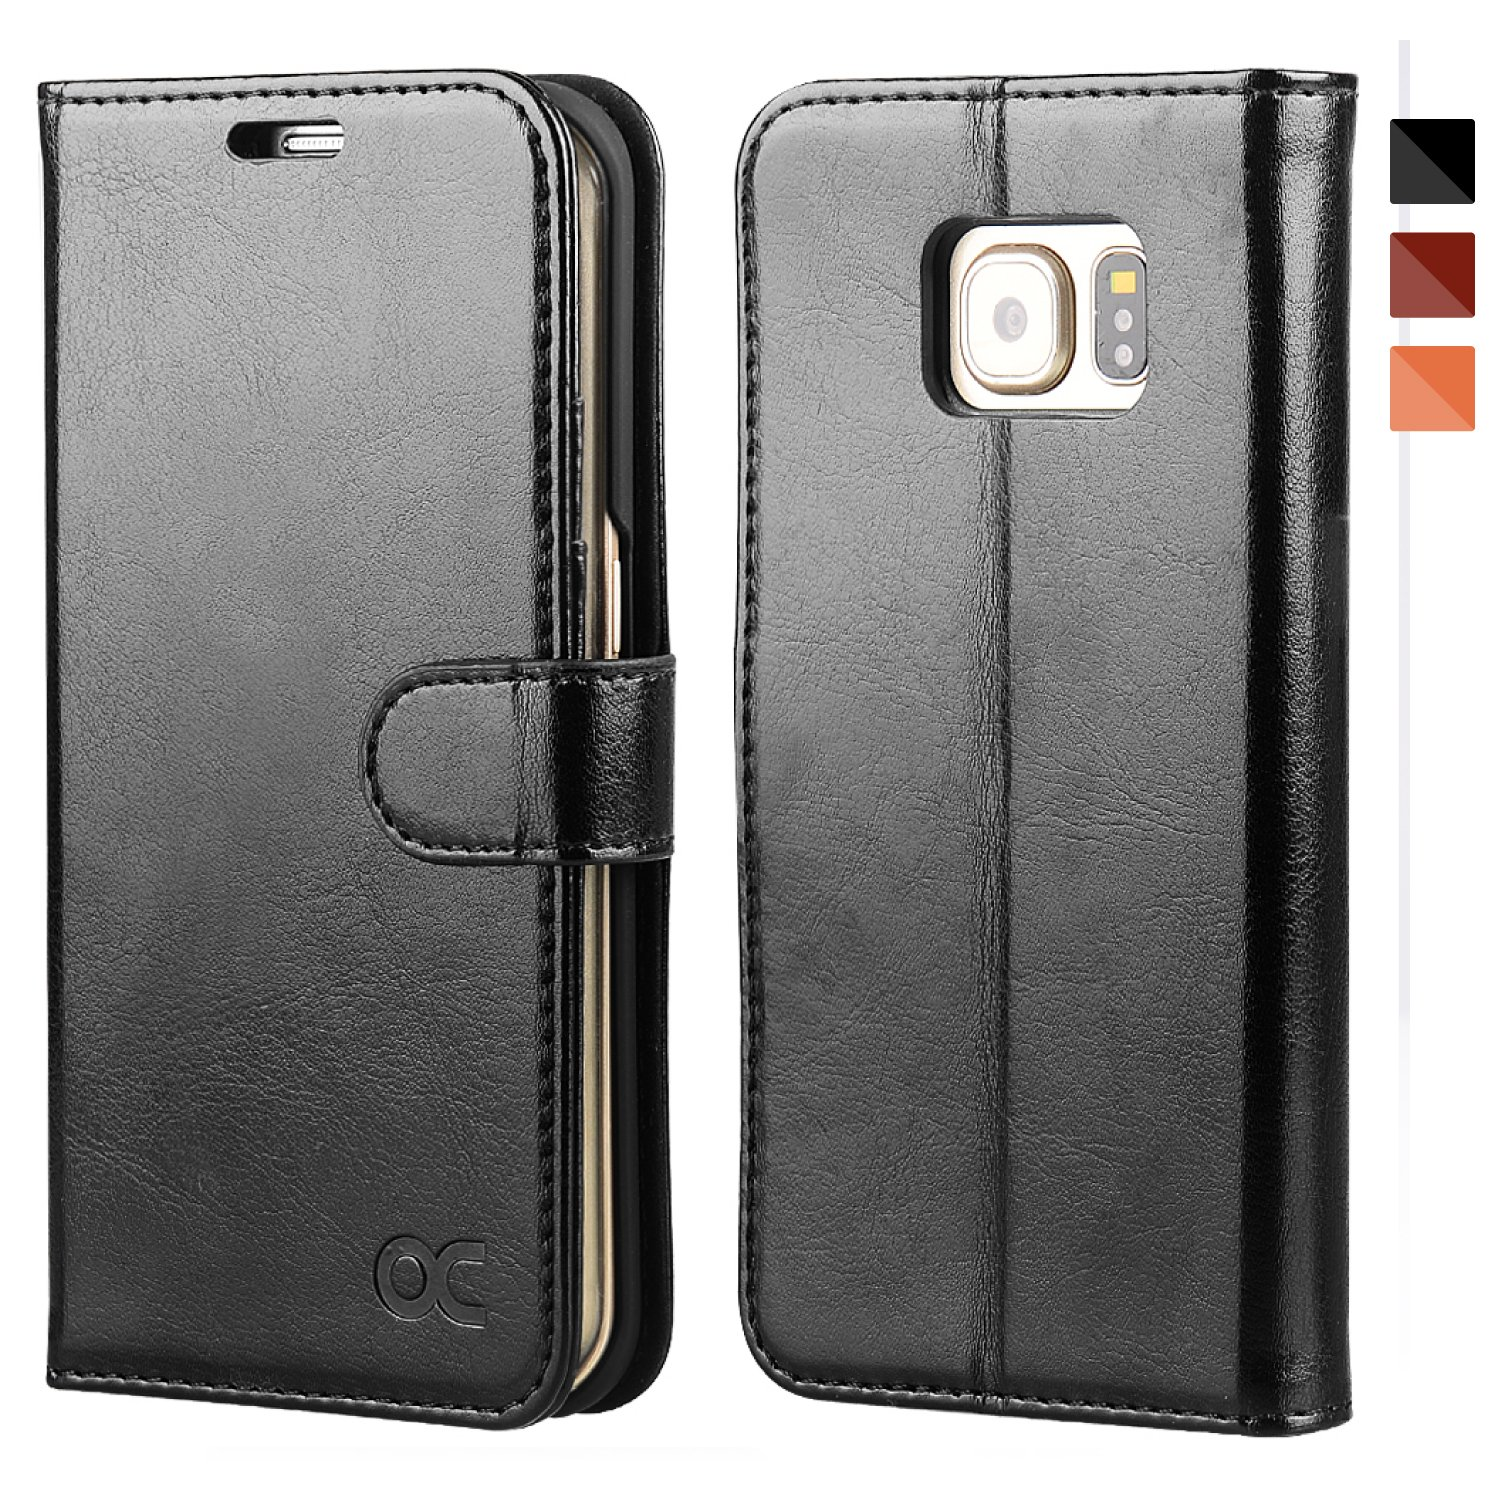 info for 59e8b d939f OCASE Samsung Galaxy S6 Edge Case Leather Wallet Case For Samsung Galaxy S6  Edge Devices - Black